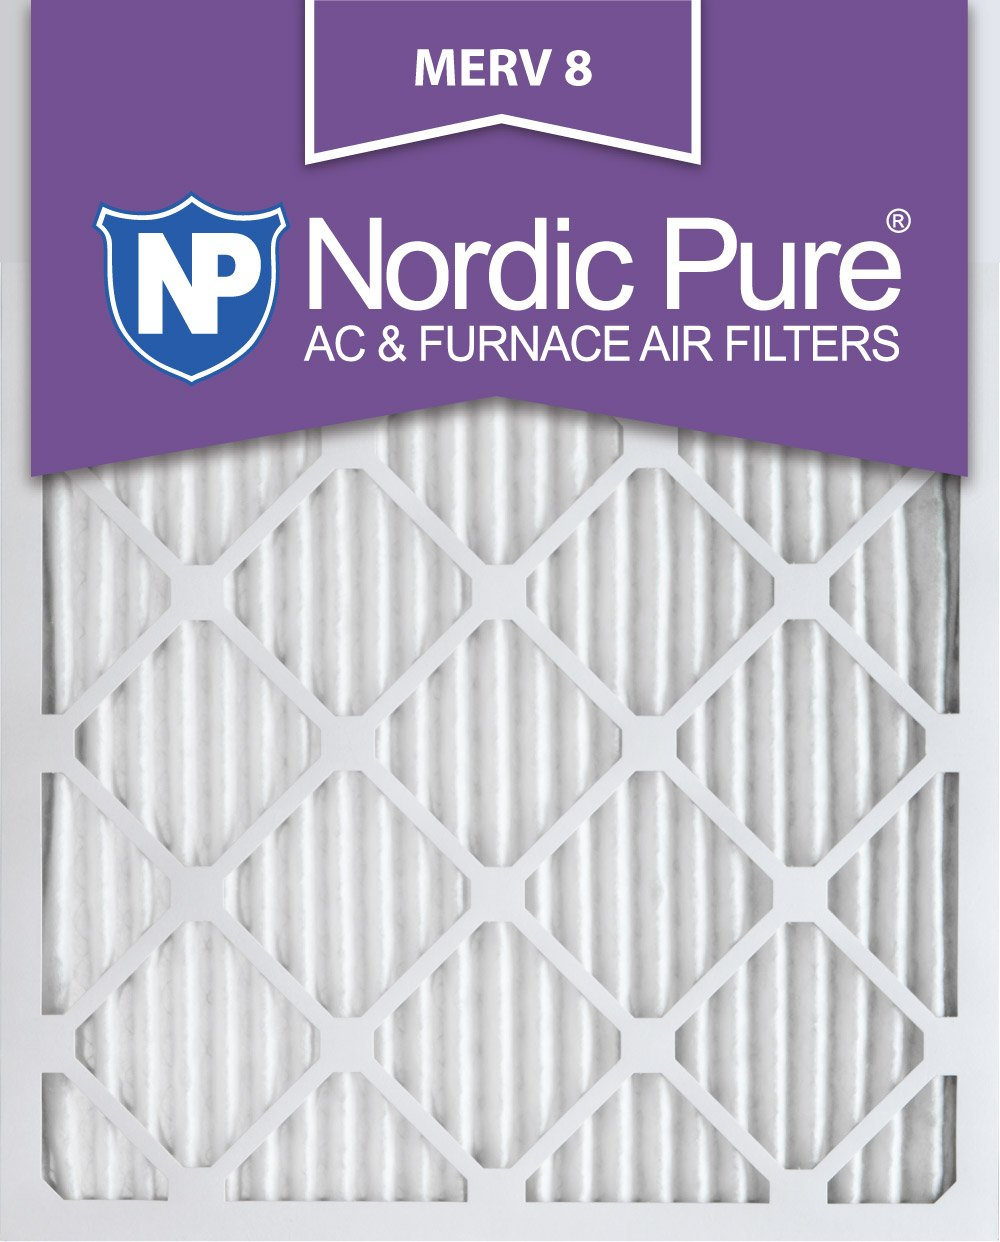 $72.31 (was $149.99) Nordic Pure 16x25x1M8-12 MERV 8 Pleated AC Furnace Air Filter, 16x25x1, Box of 12